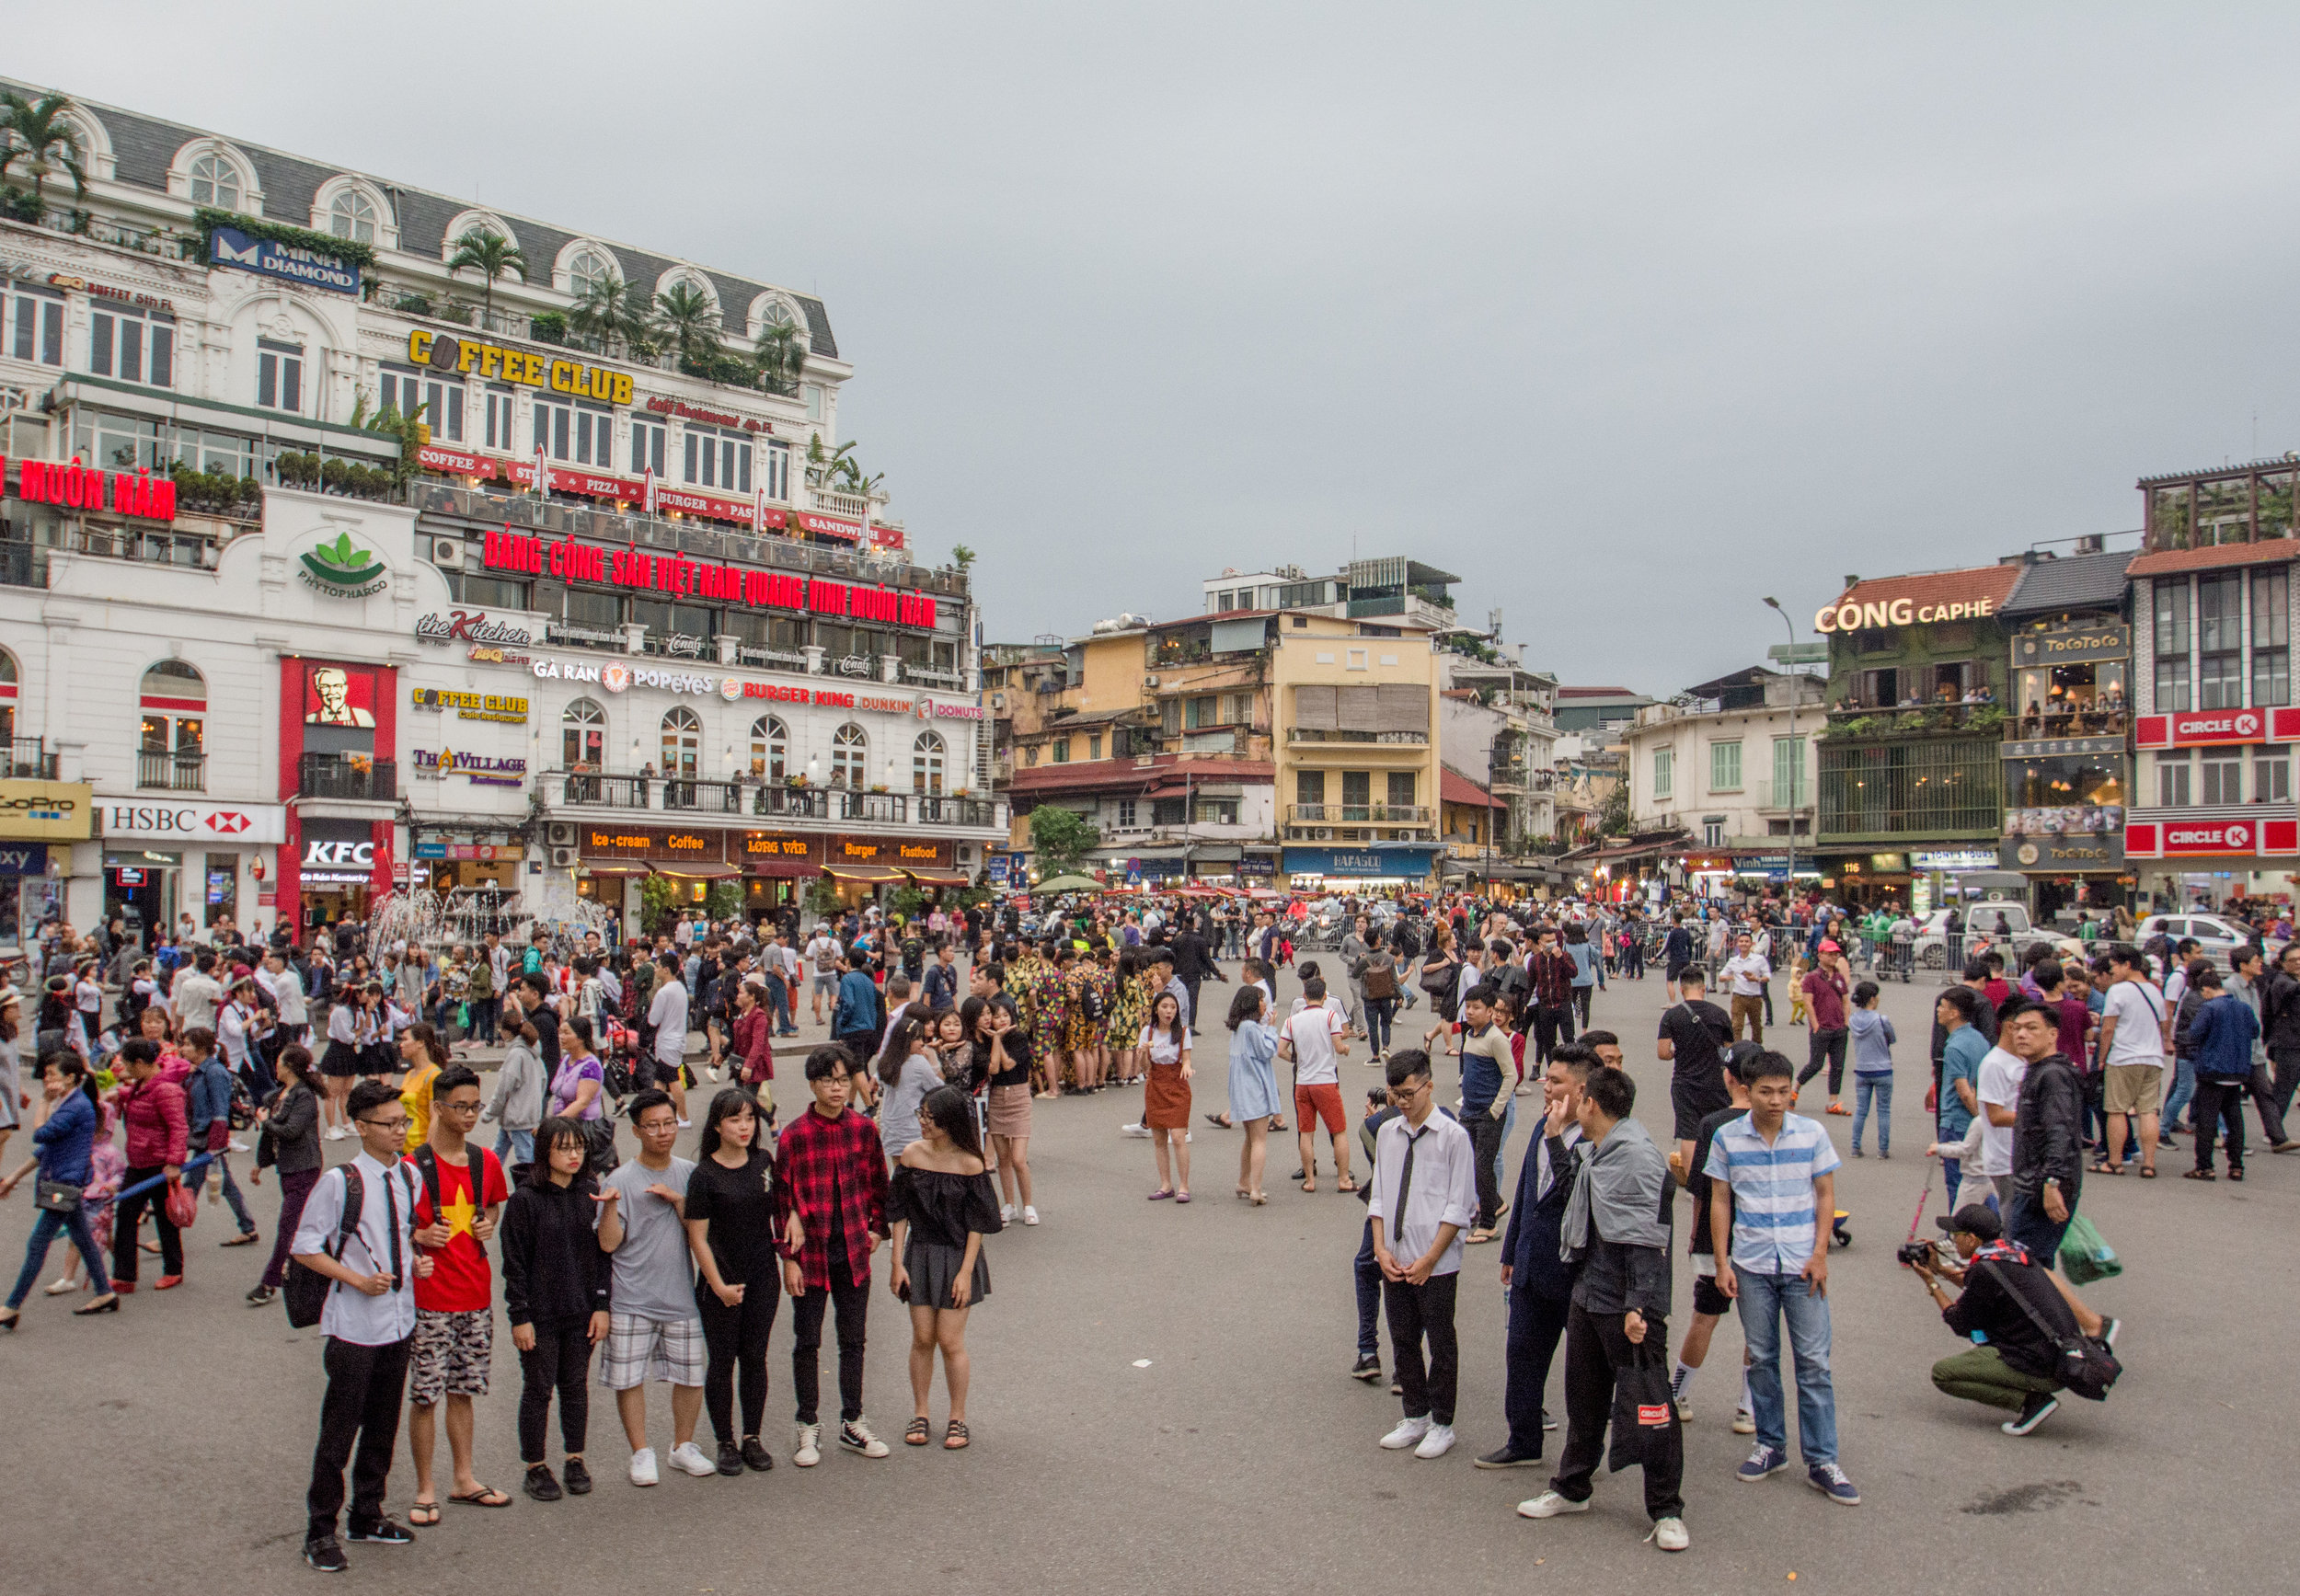 The Vietnamese Case For Parks And